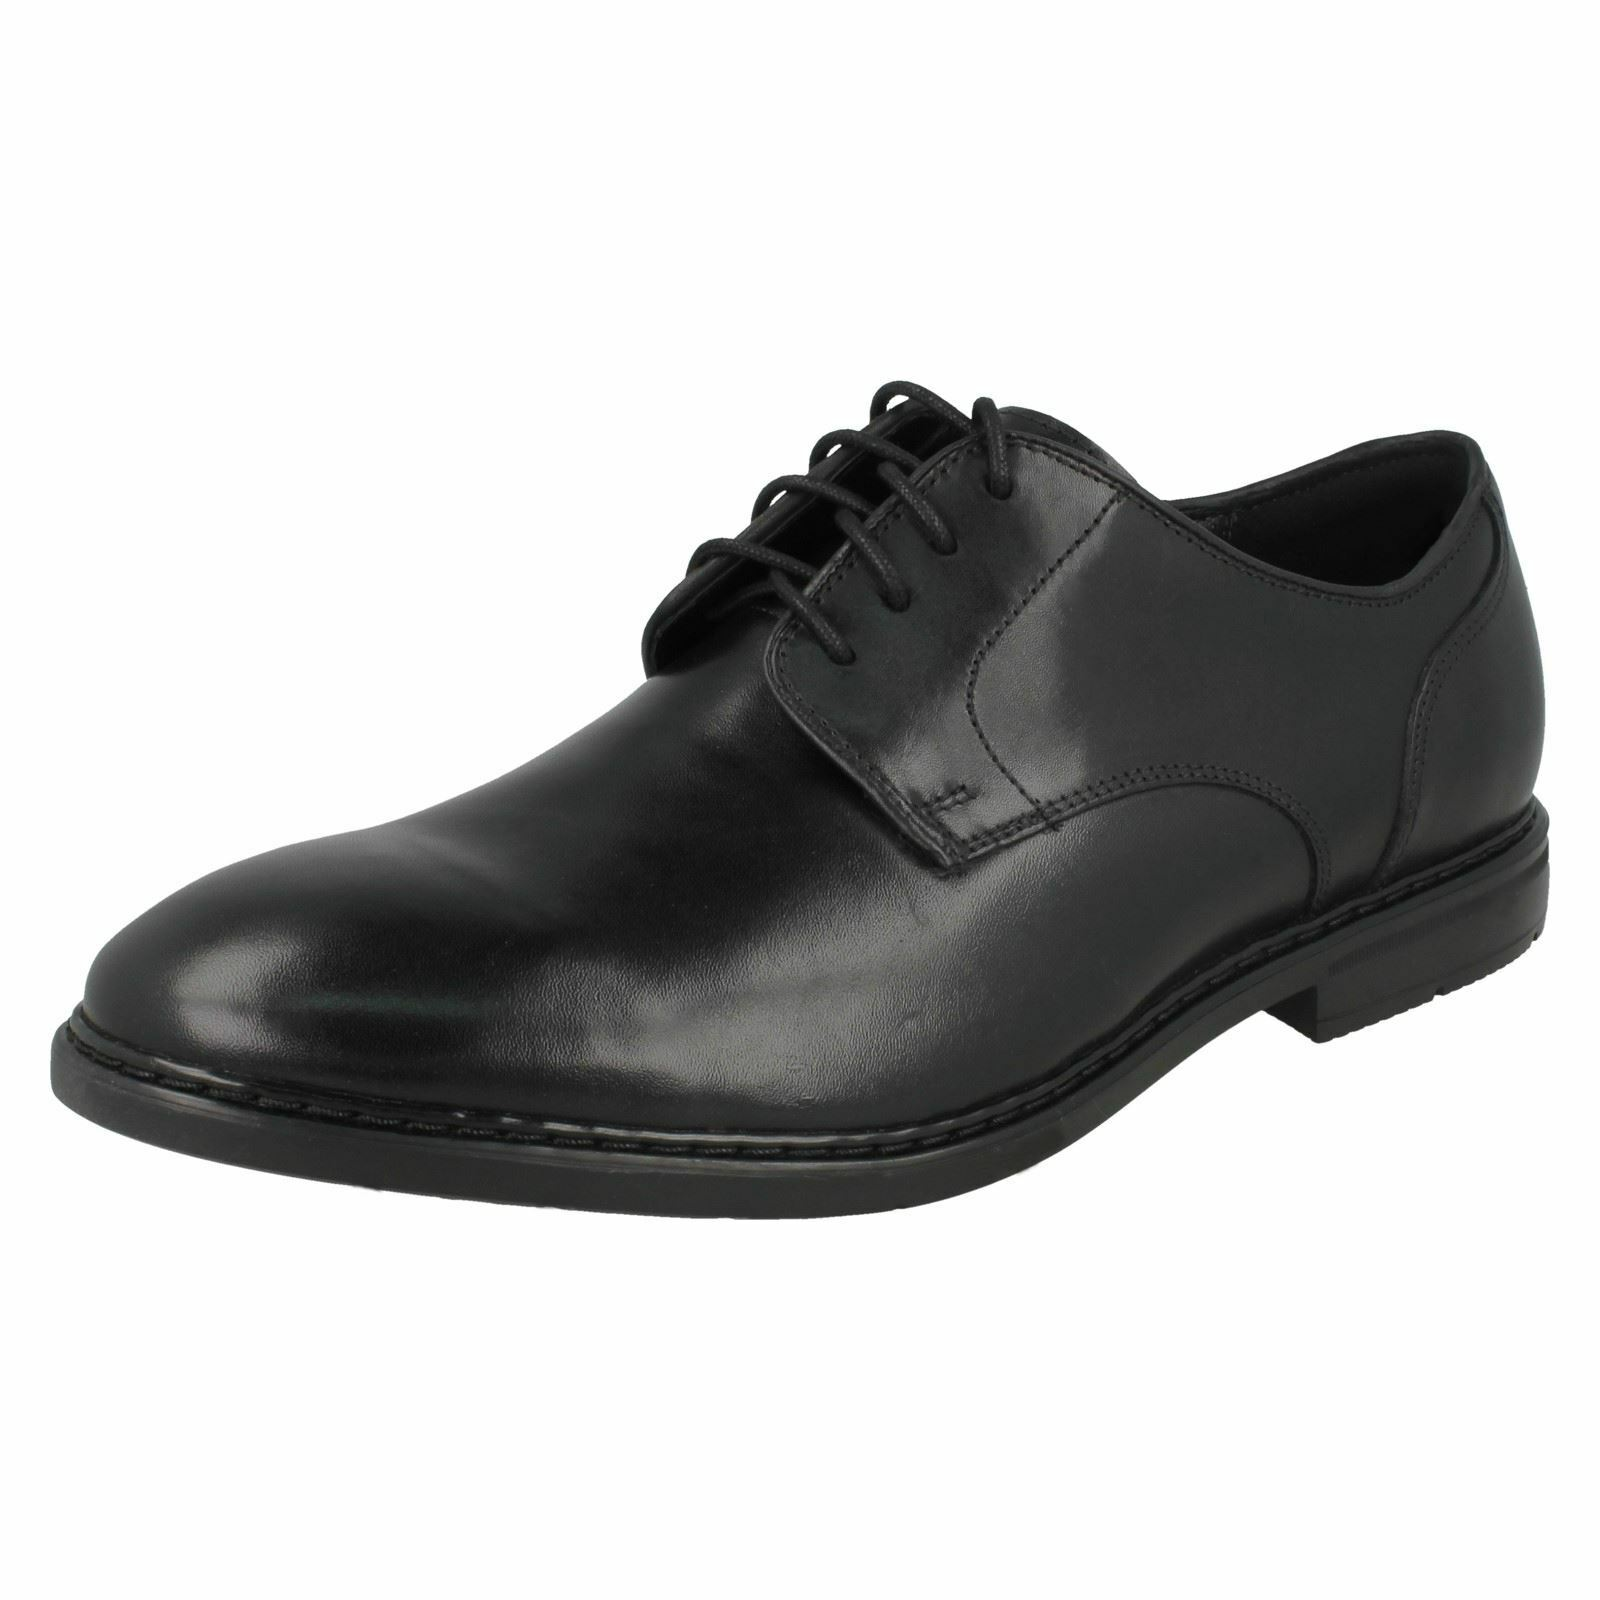 Mens Clarks Banbury Lace Formal Leather Lace Up Shoes